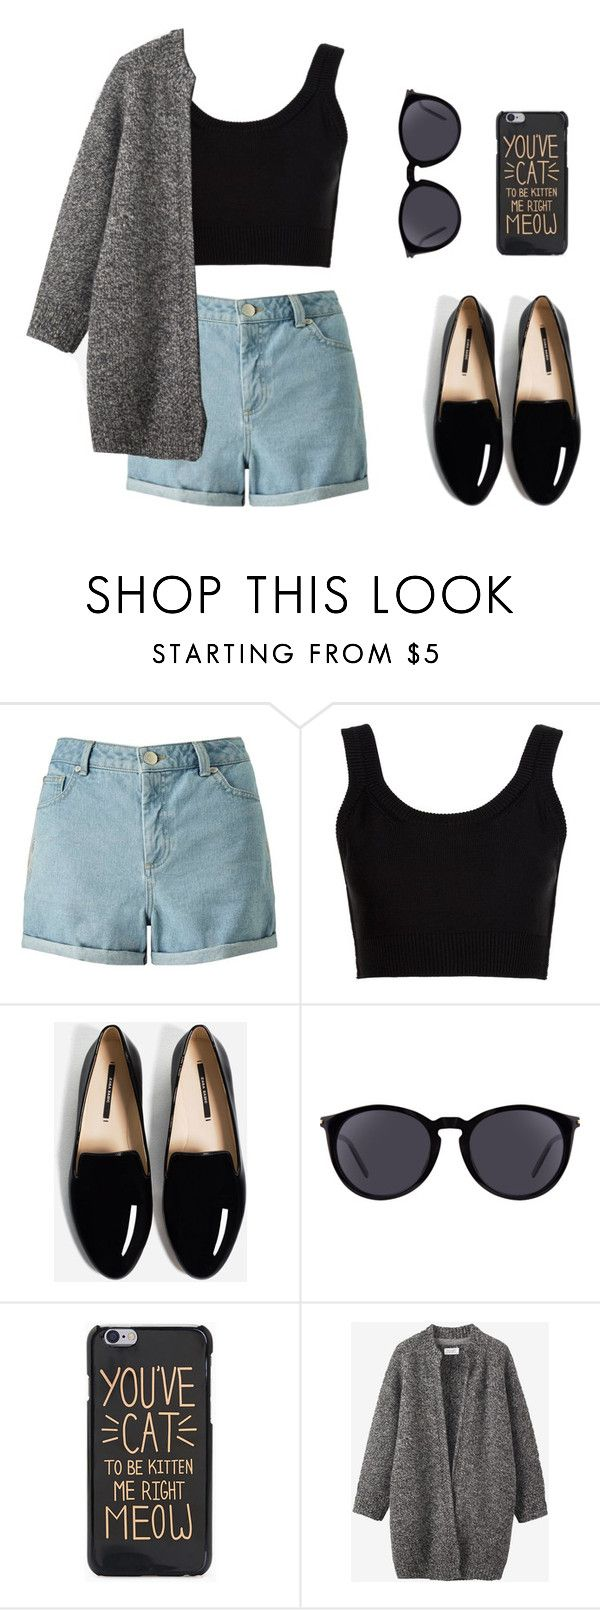 """Simple day"" by kaca-miand-lune on Polyvore featuring moda, Miss Selfridge, Calvin Klein Collection, Yves Saint Laurent, Toast, simple, like e follow"